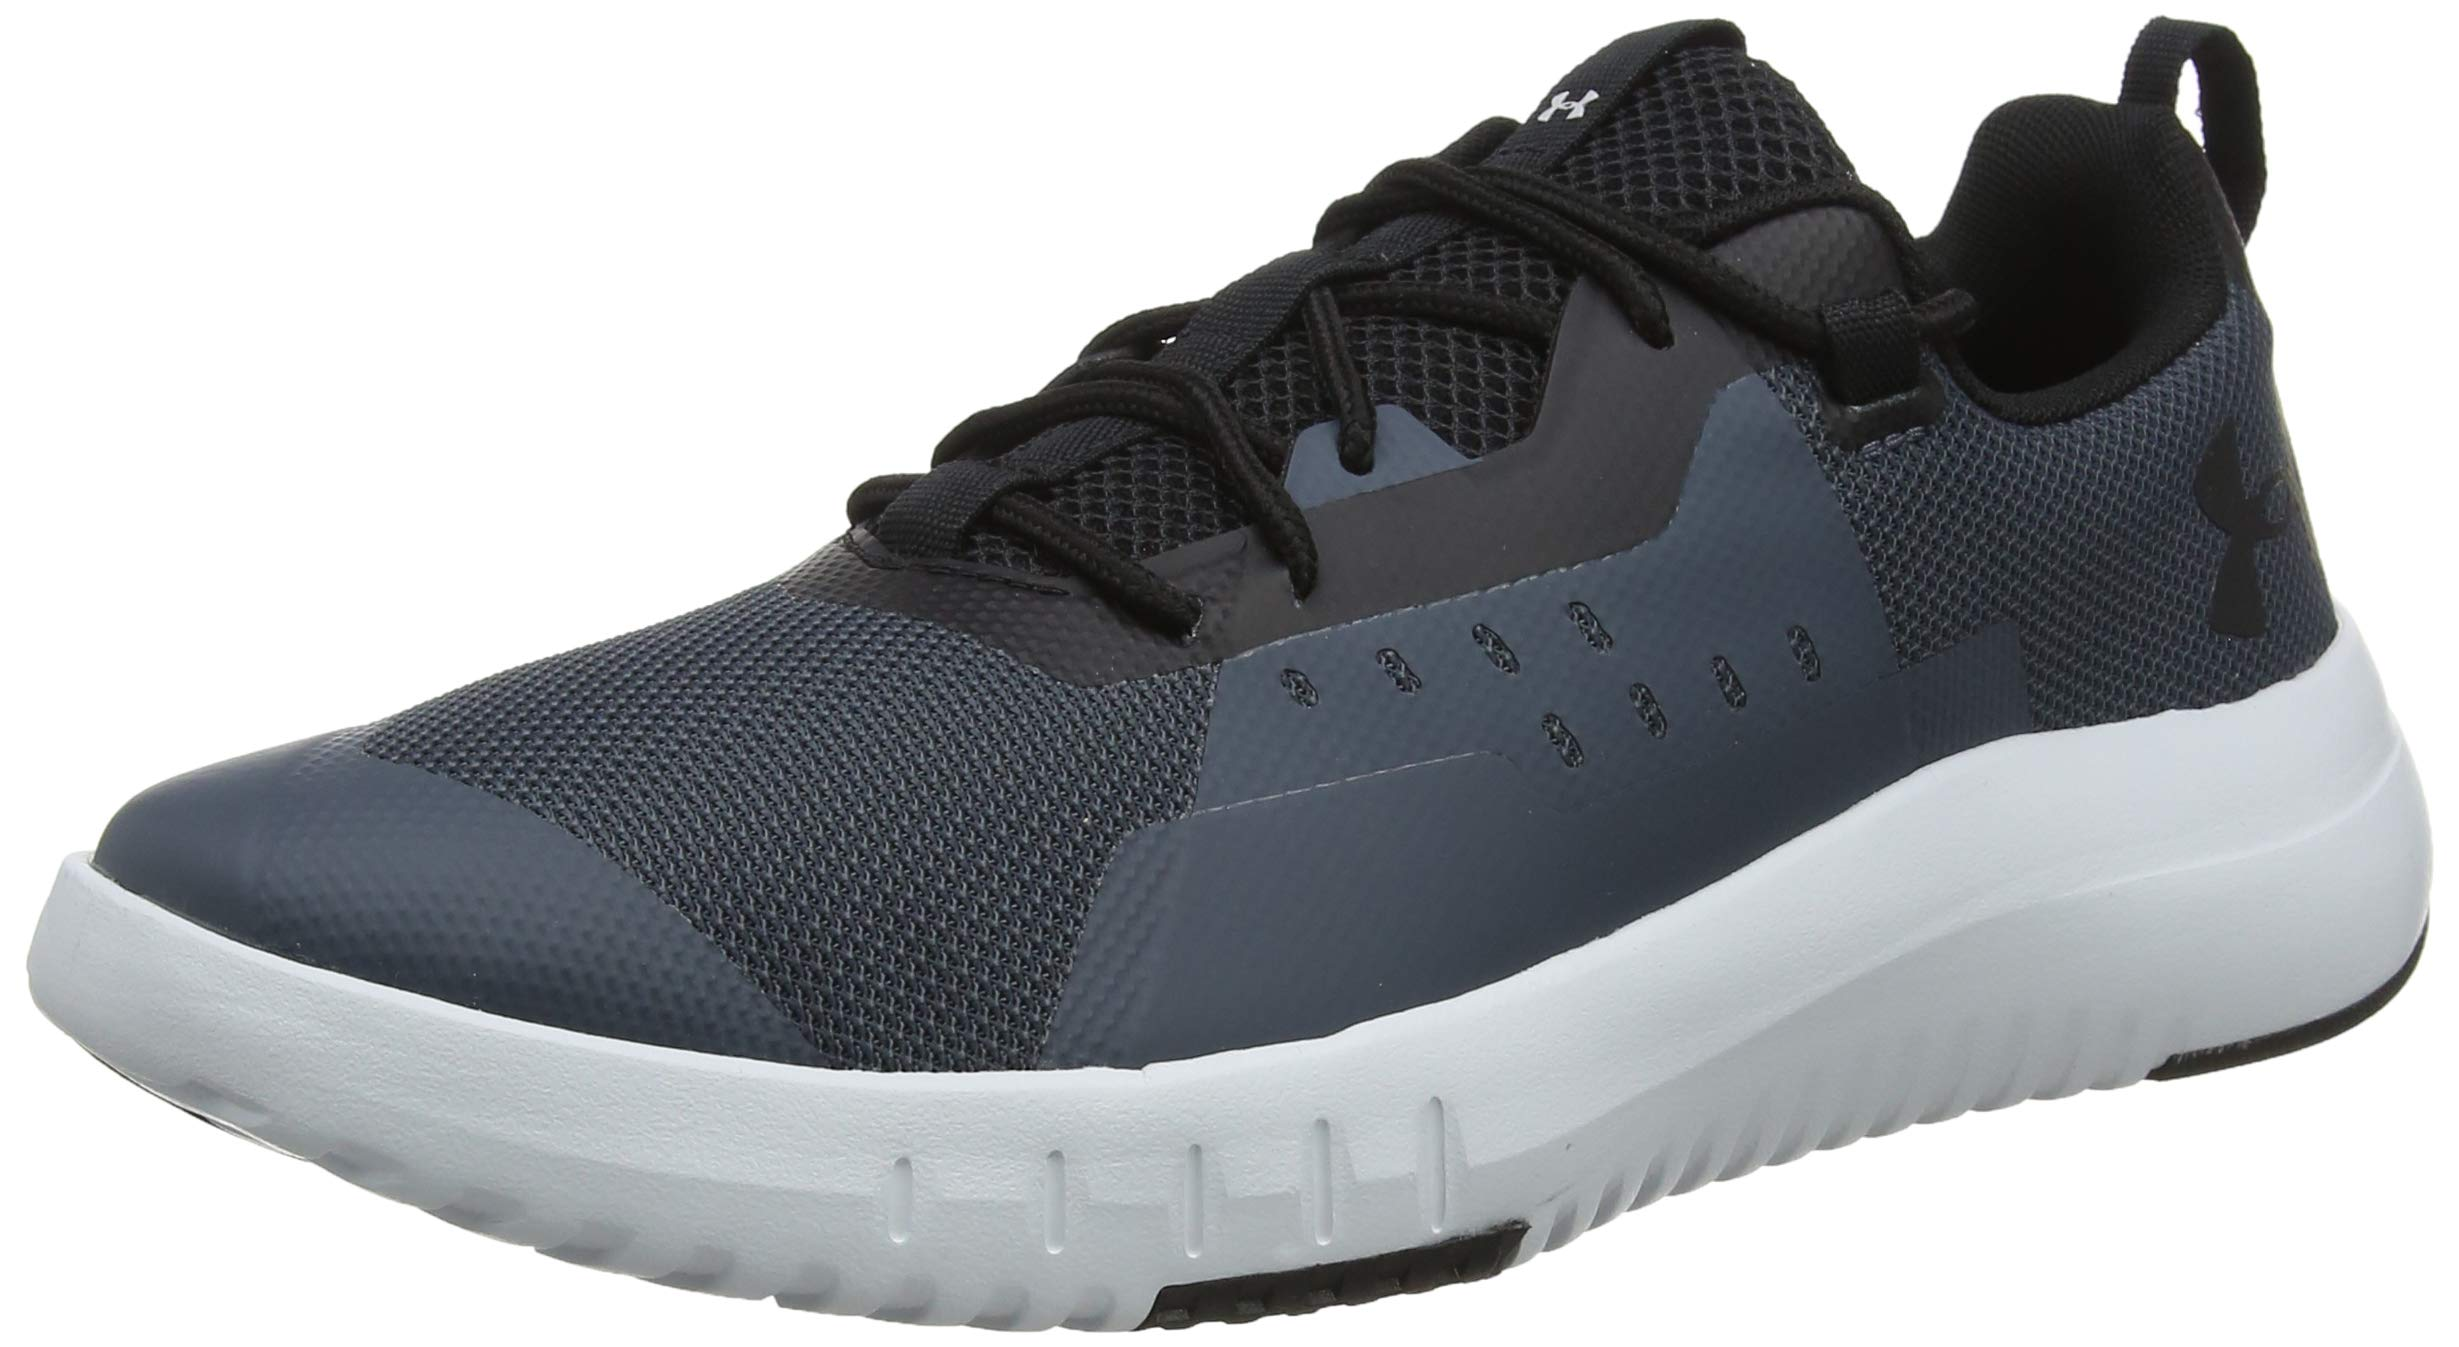 Eu 5 De Fitness HommeGriswire 40140 Tr96Chaussures halo Under Gray black Armour N8nvwOm0